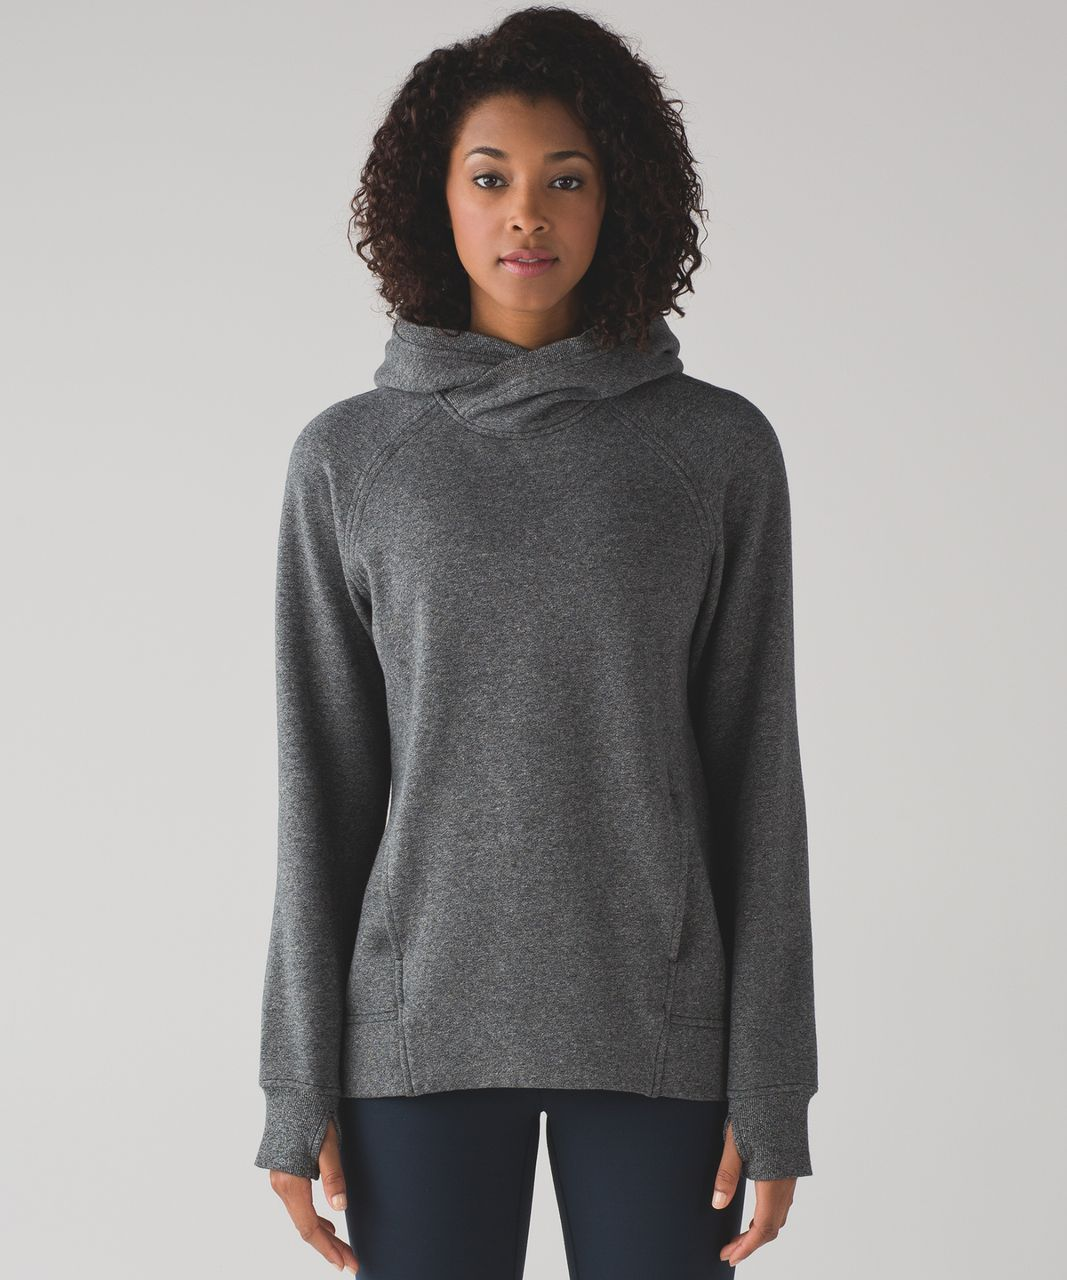 Lululemon Fleece Please Pullover - Heathered Speckled Black - lulu ...